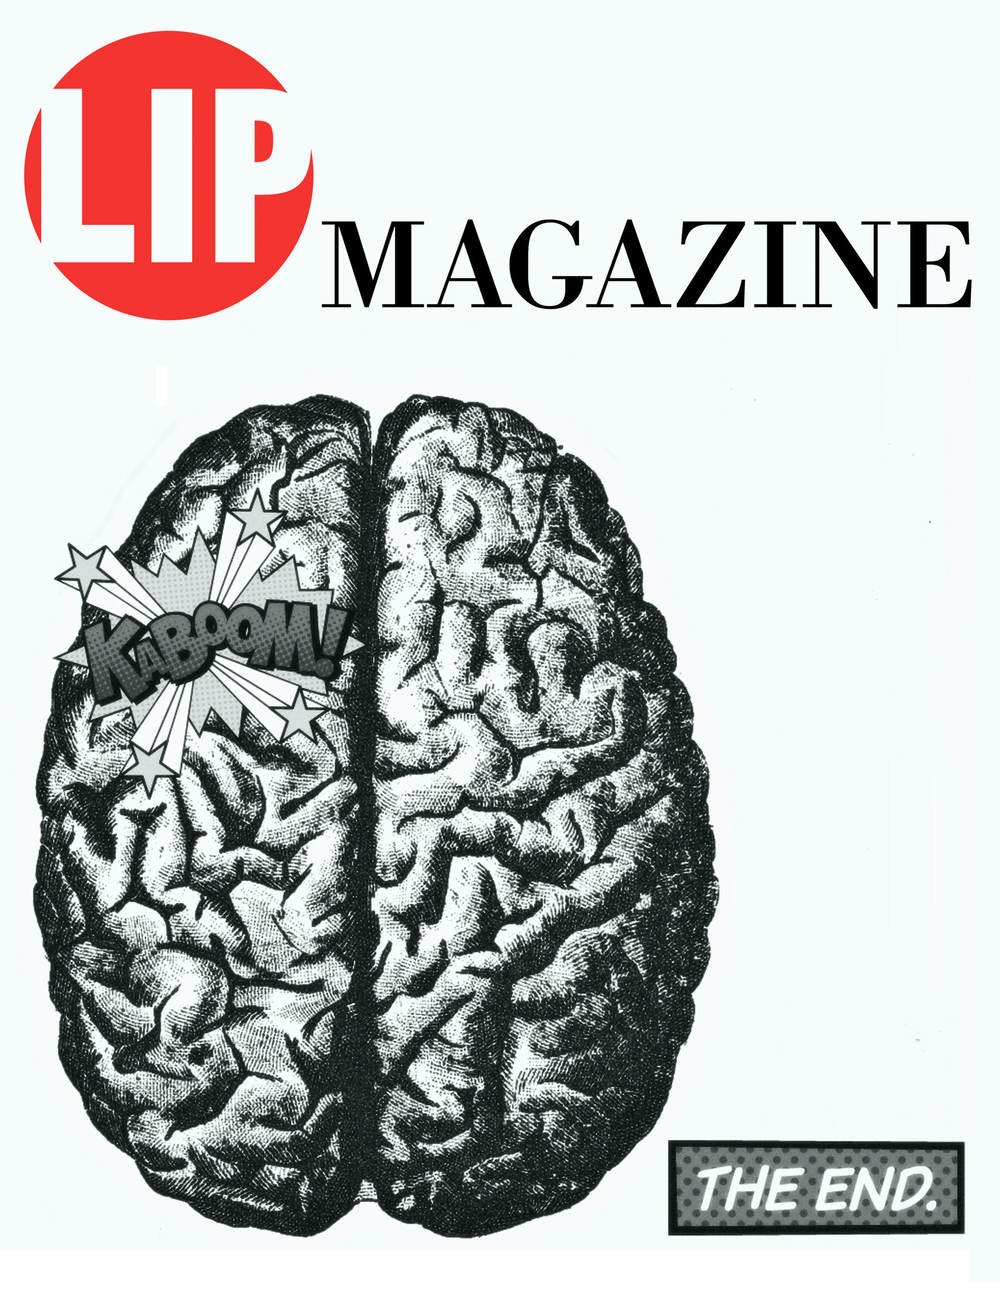 LIP MAG_FINISHED.jpg